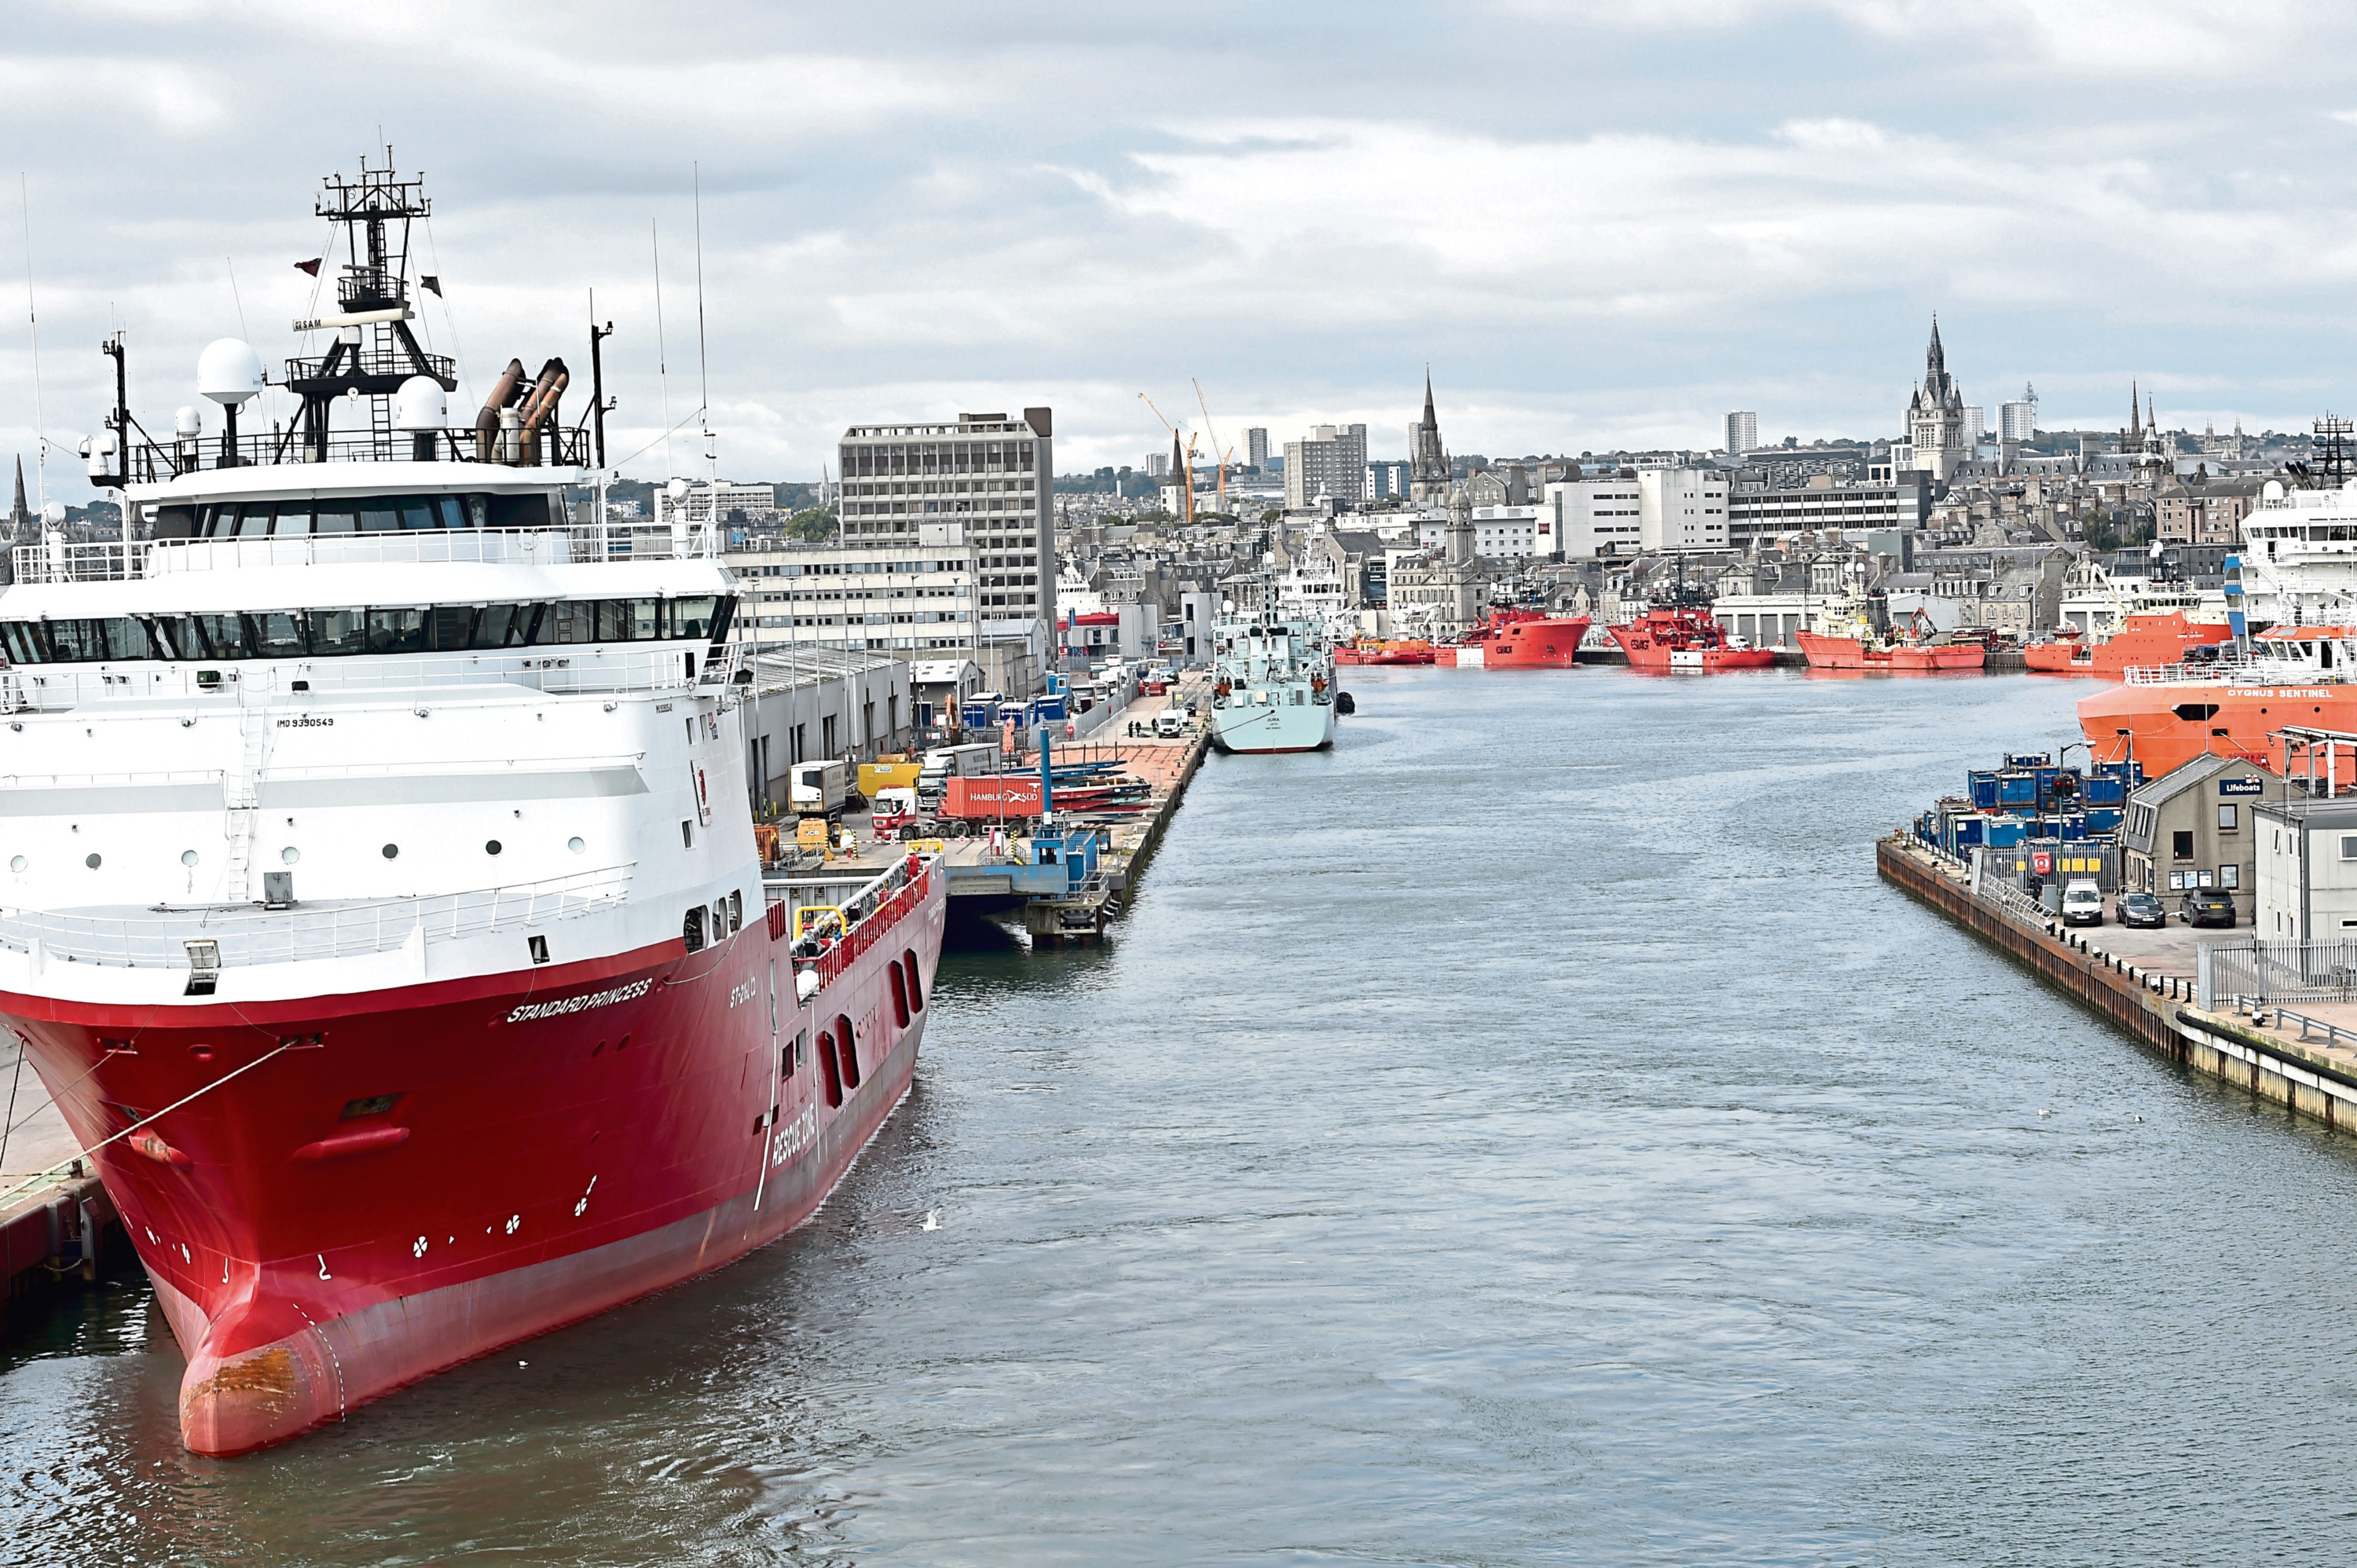 Harbour bosses have issued a safety warning over trespassing